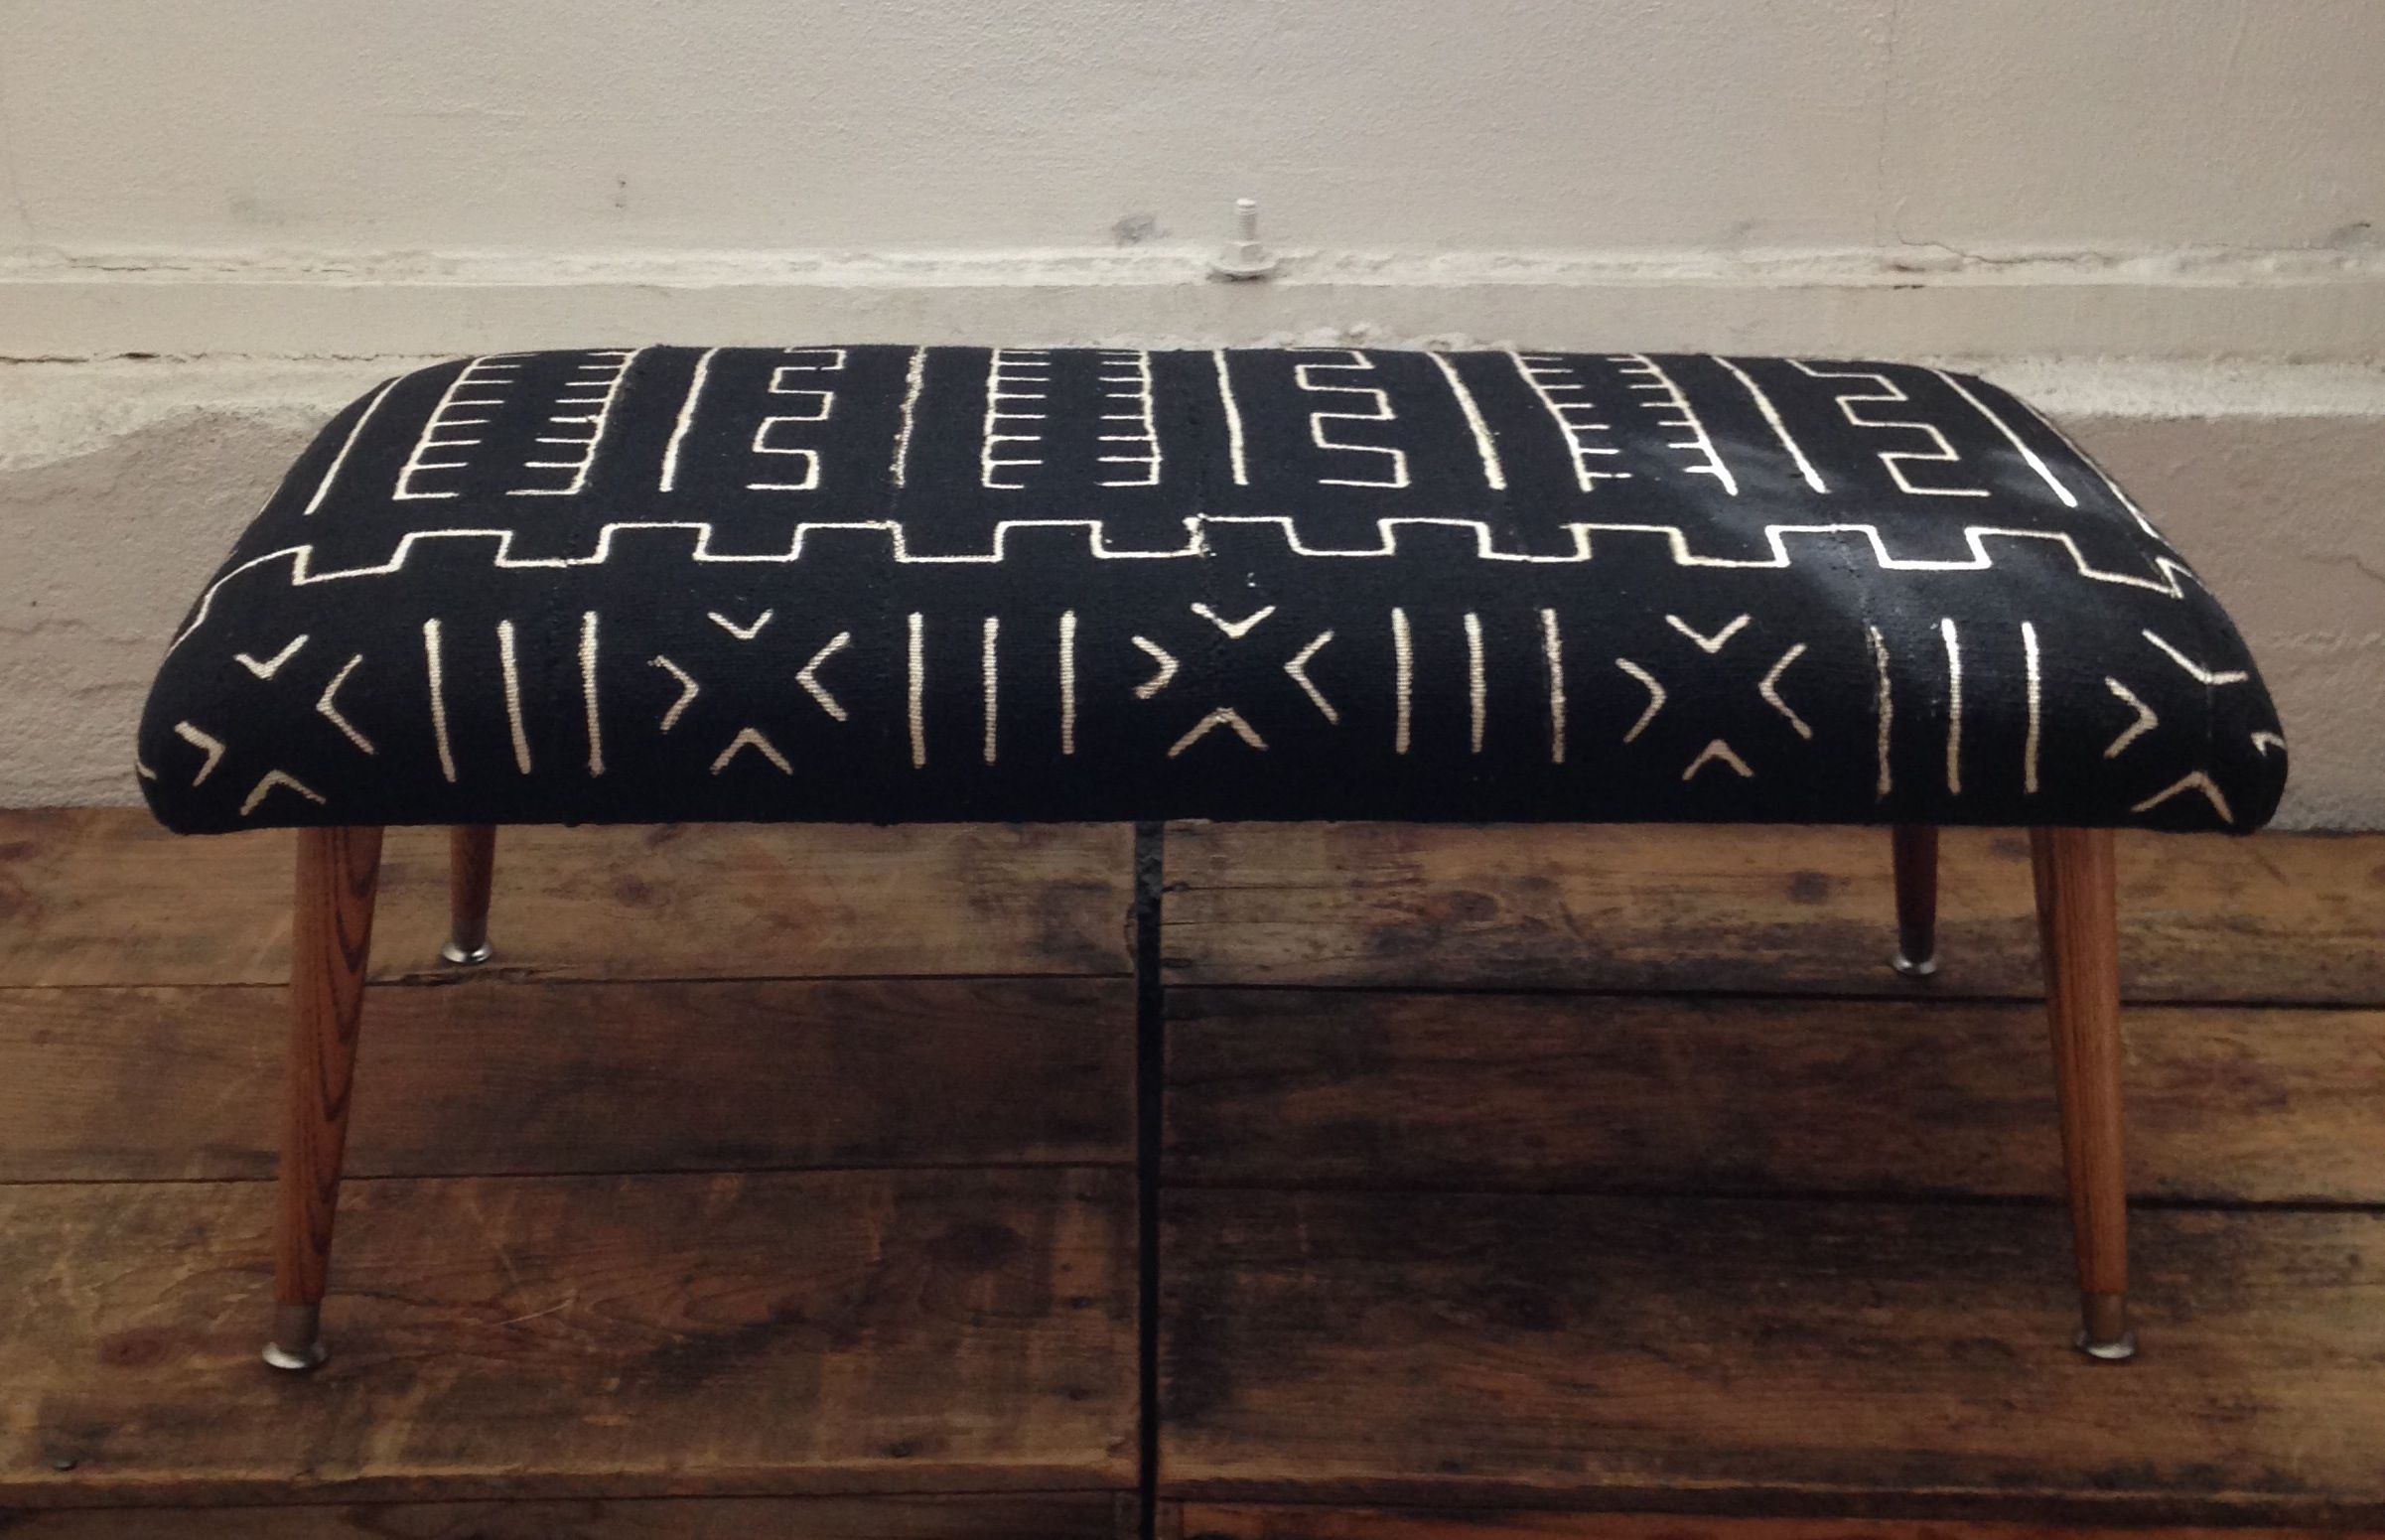 Our Signature Bench Upholstered In Your Choice Of Black And White